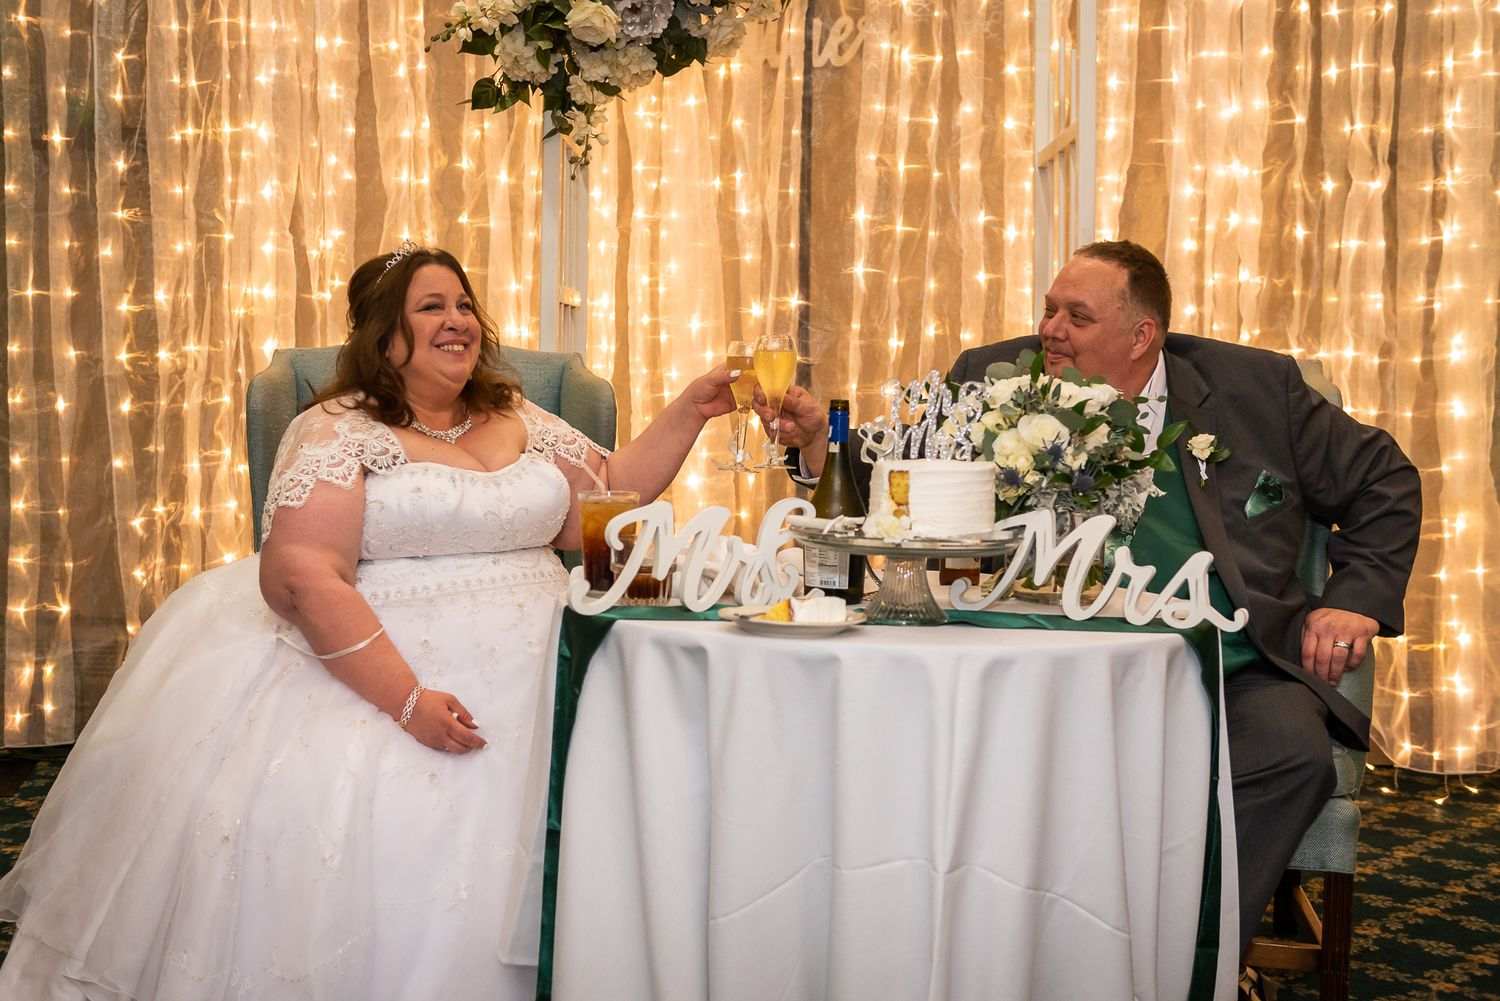 Wisconsin wedding couple raise their glasses in a toast on their wedding day